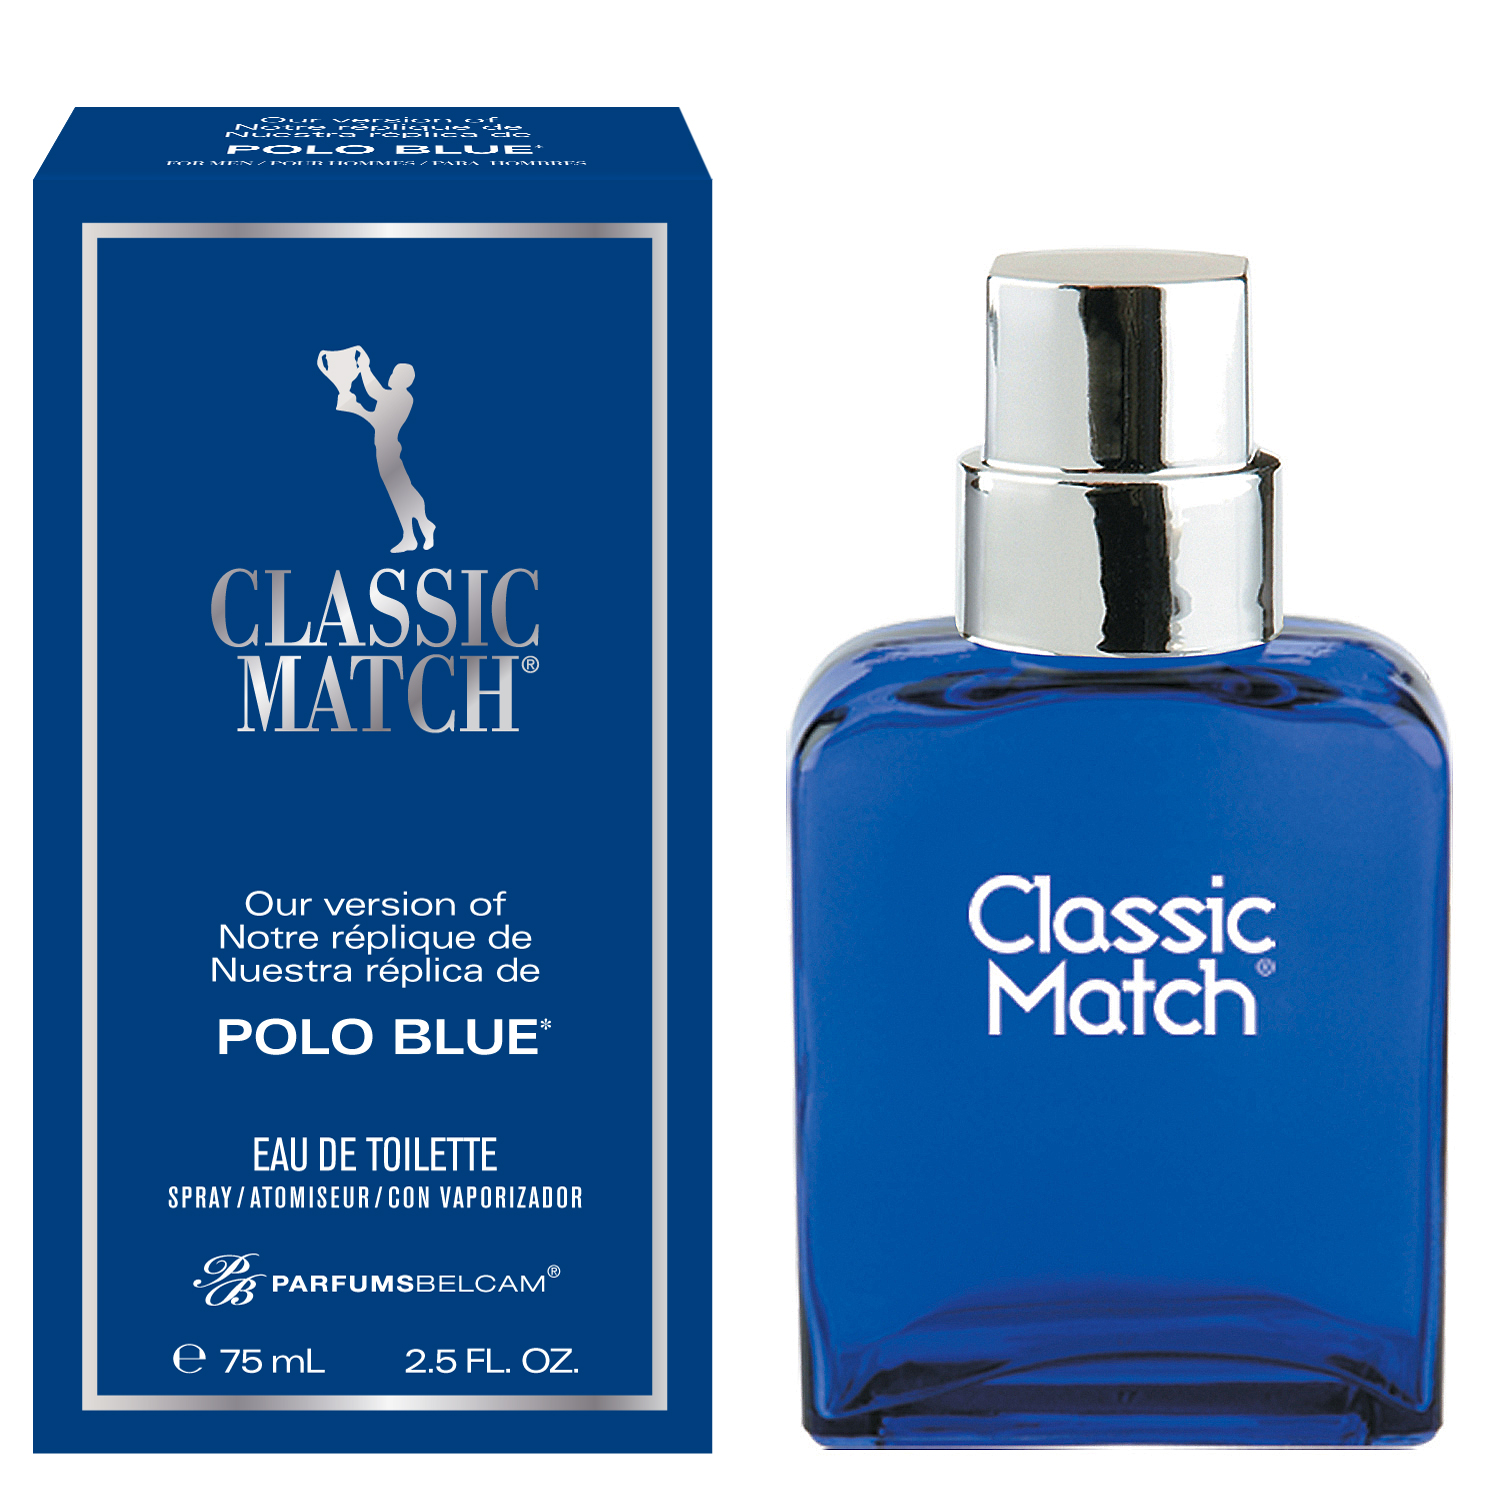 Classic Match, version of Polo Blue*, by PB ParfumsBelcam, Eau de Toilette Spray for Men, 2.5 oz